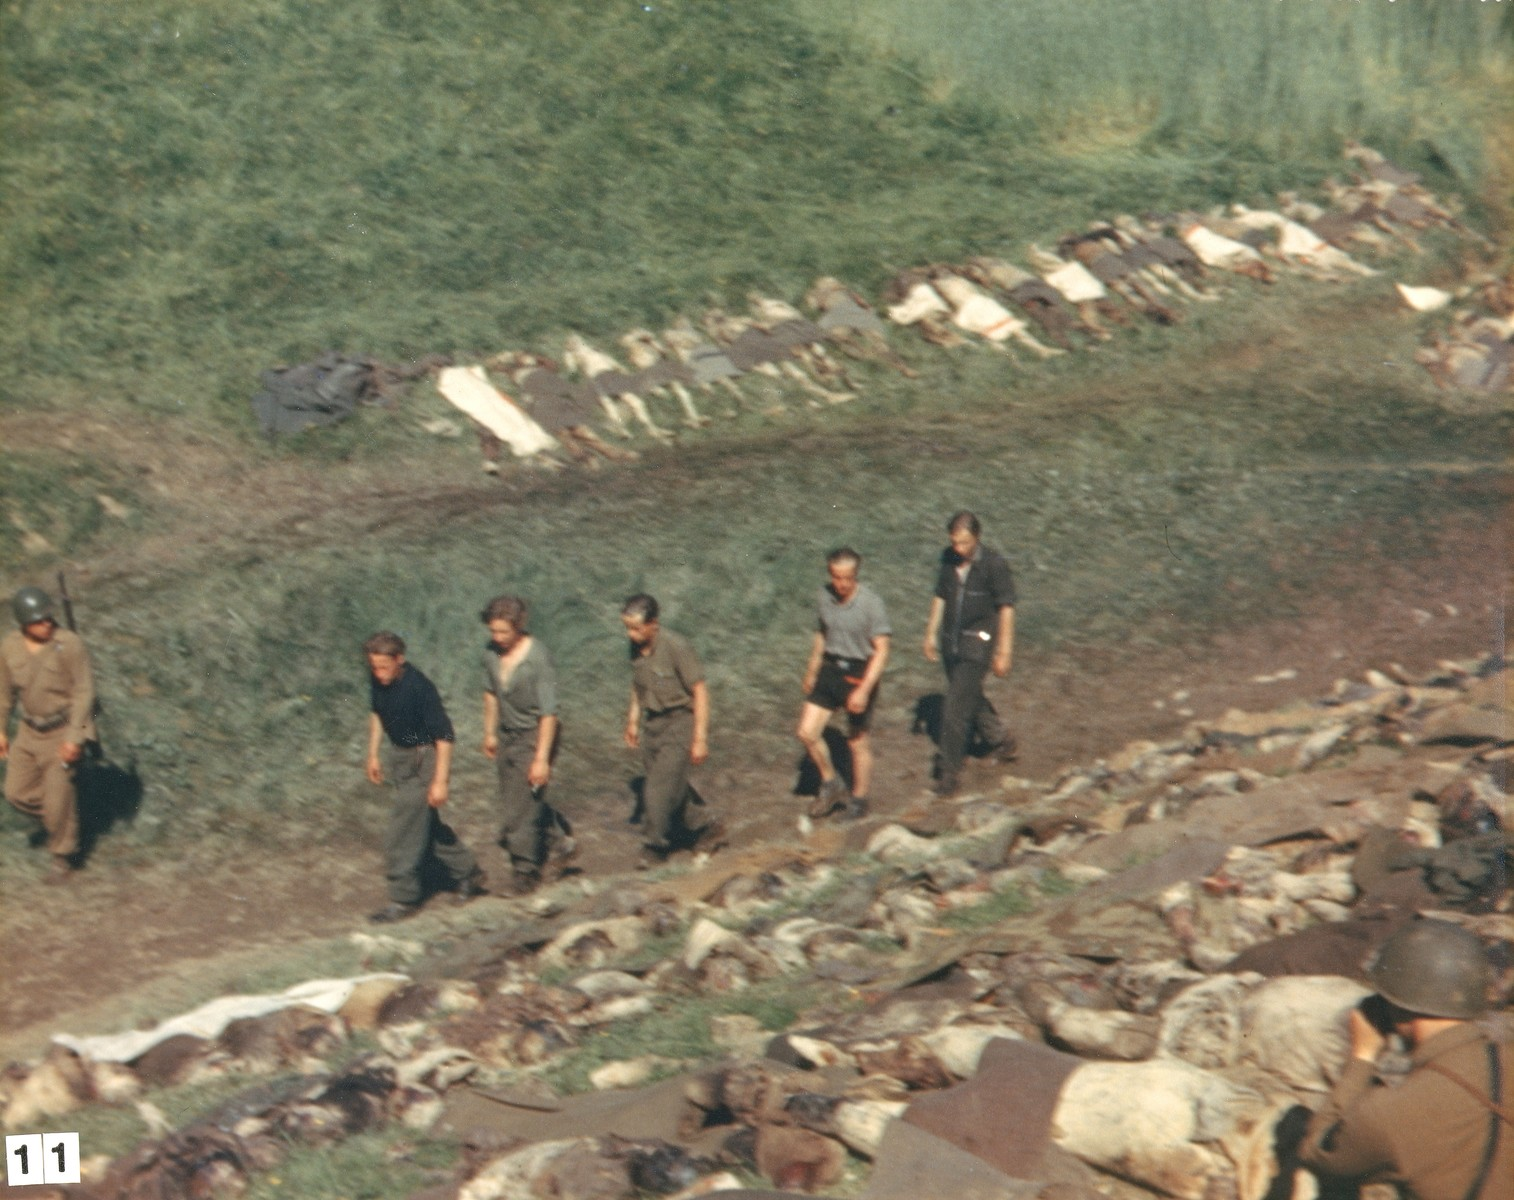 Five SS men in civilian clothing are forced to walk among the corpses of prisoners exhumed from a mass grave near Nammering.  The men had changed into civilian clothes in an unsuccessful attempt to evade capture.  According to the photographer, they were killed by U.S. troops just after this photo was taken.